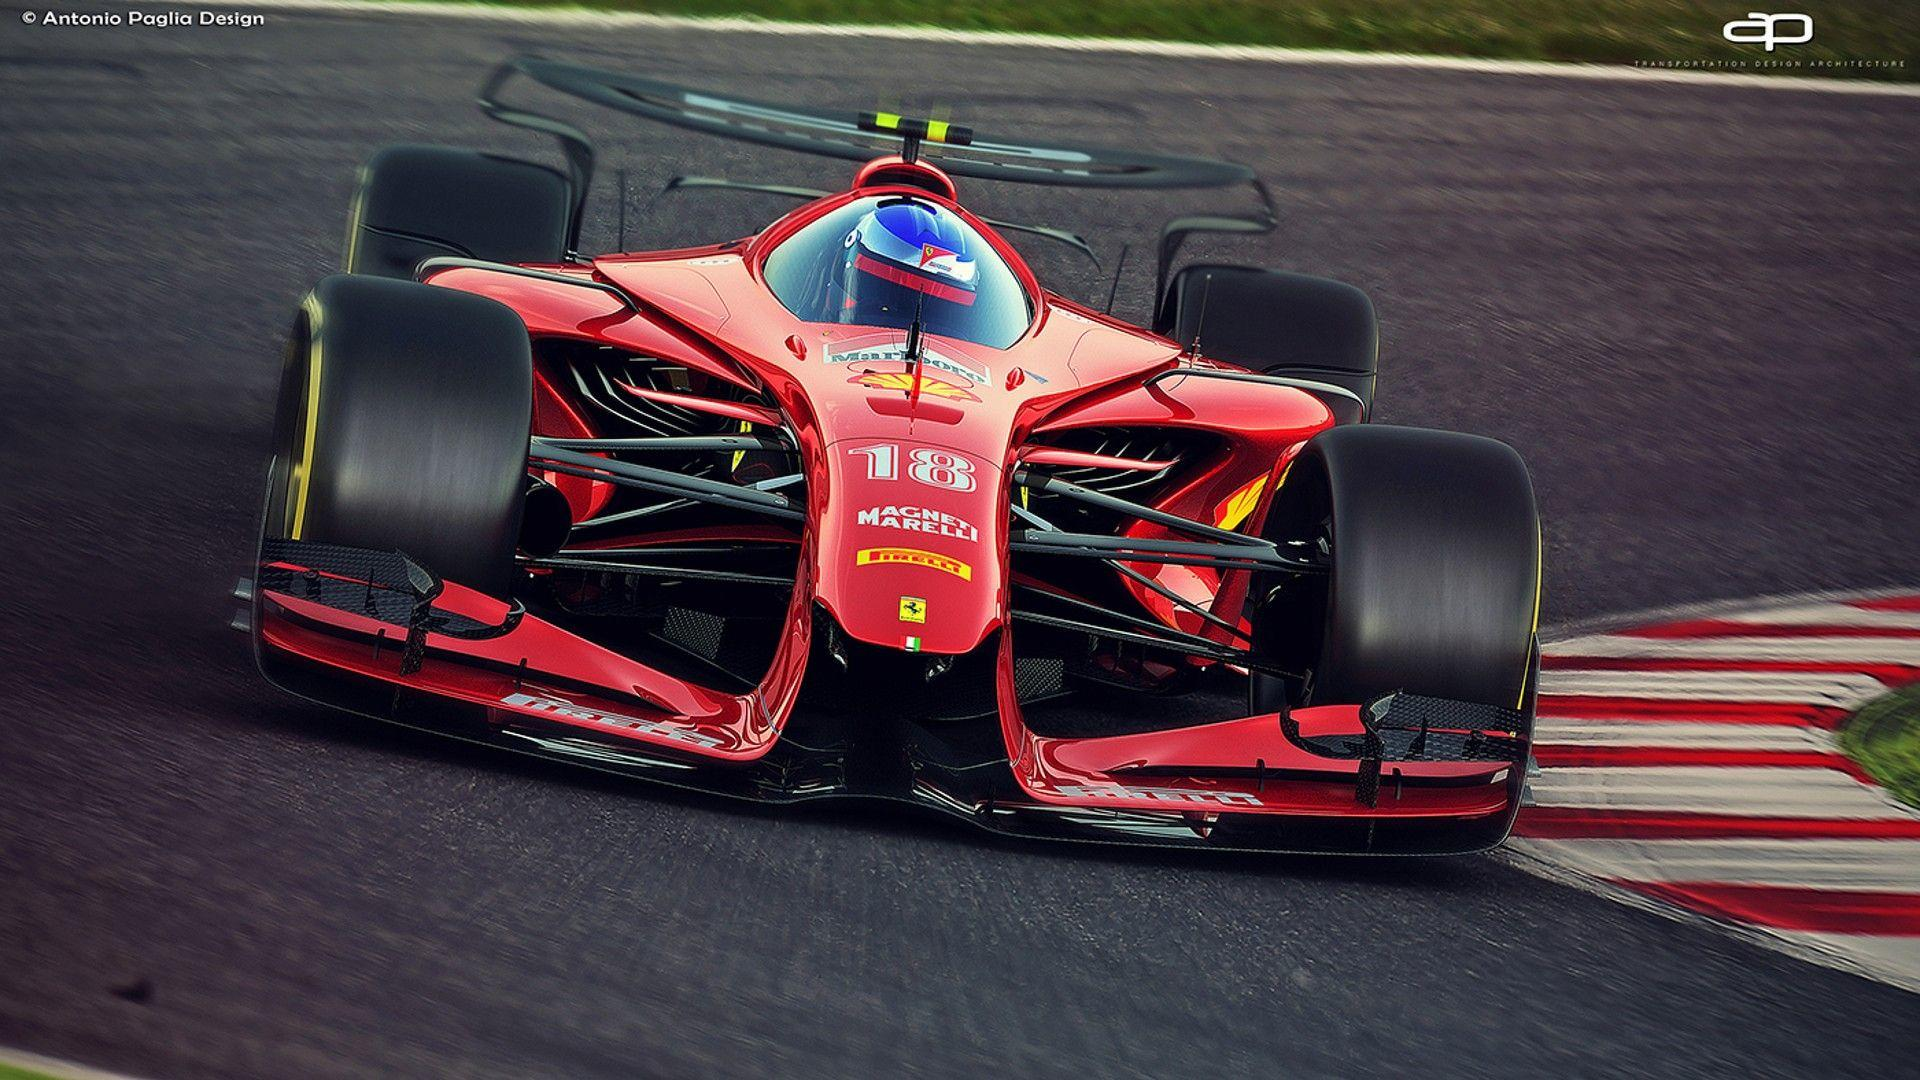 We Can Only Hope F1 Cars Will Look This Good In 2025